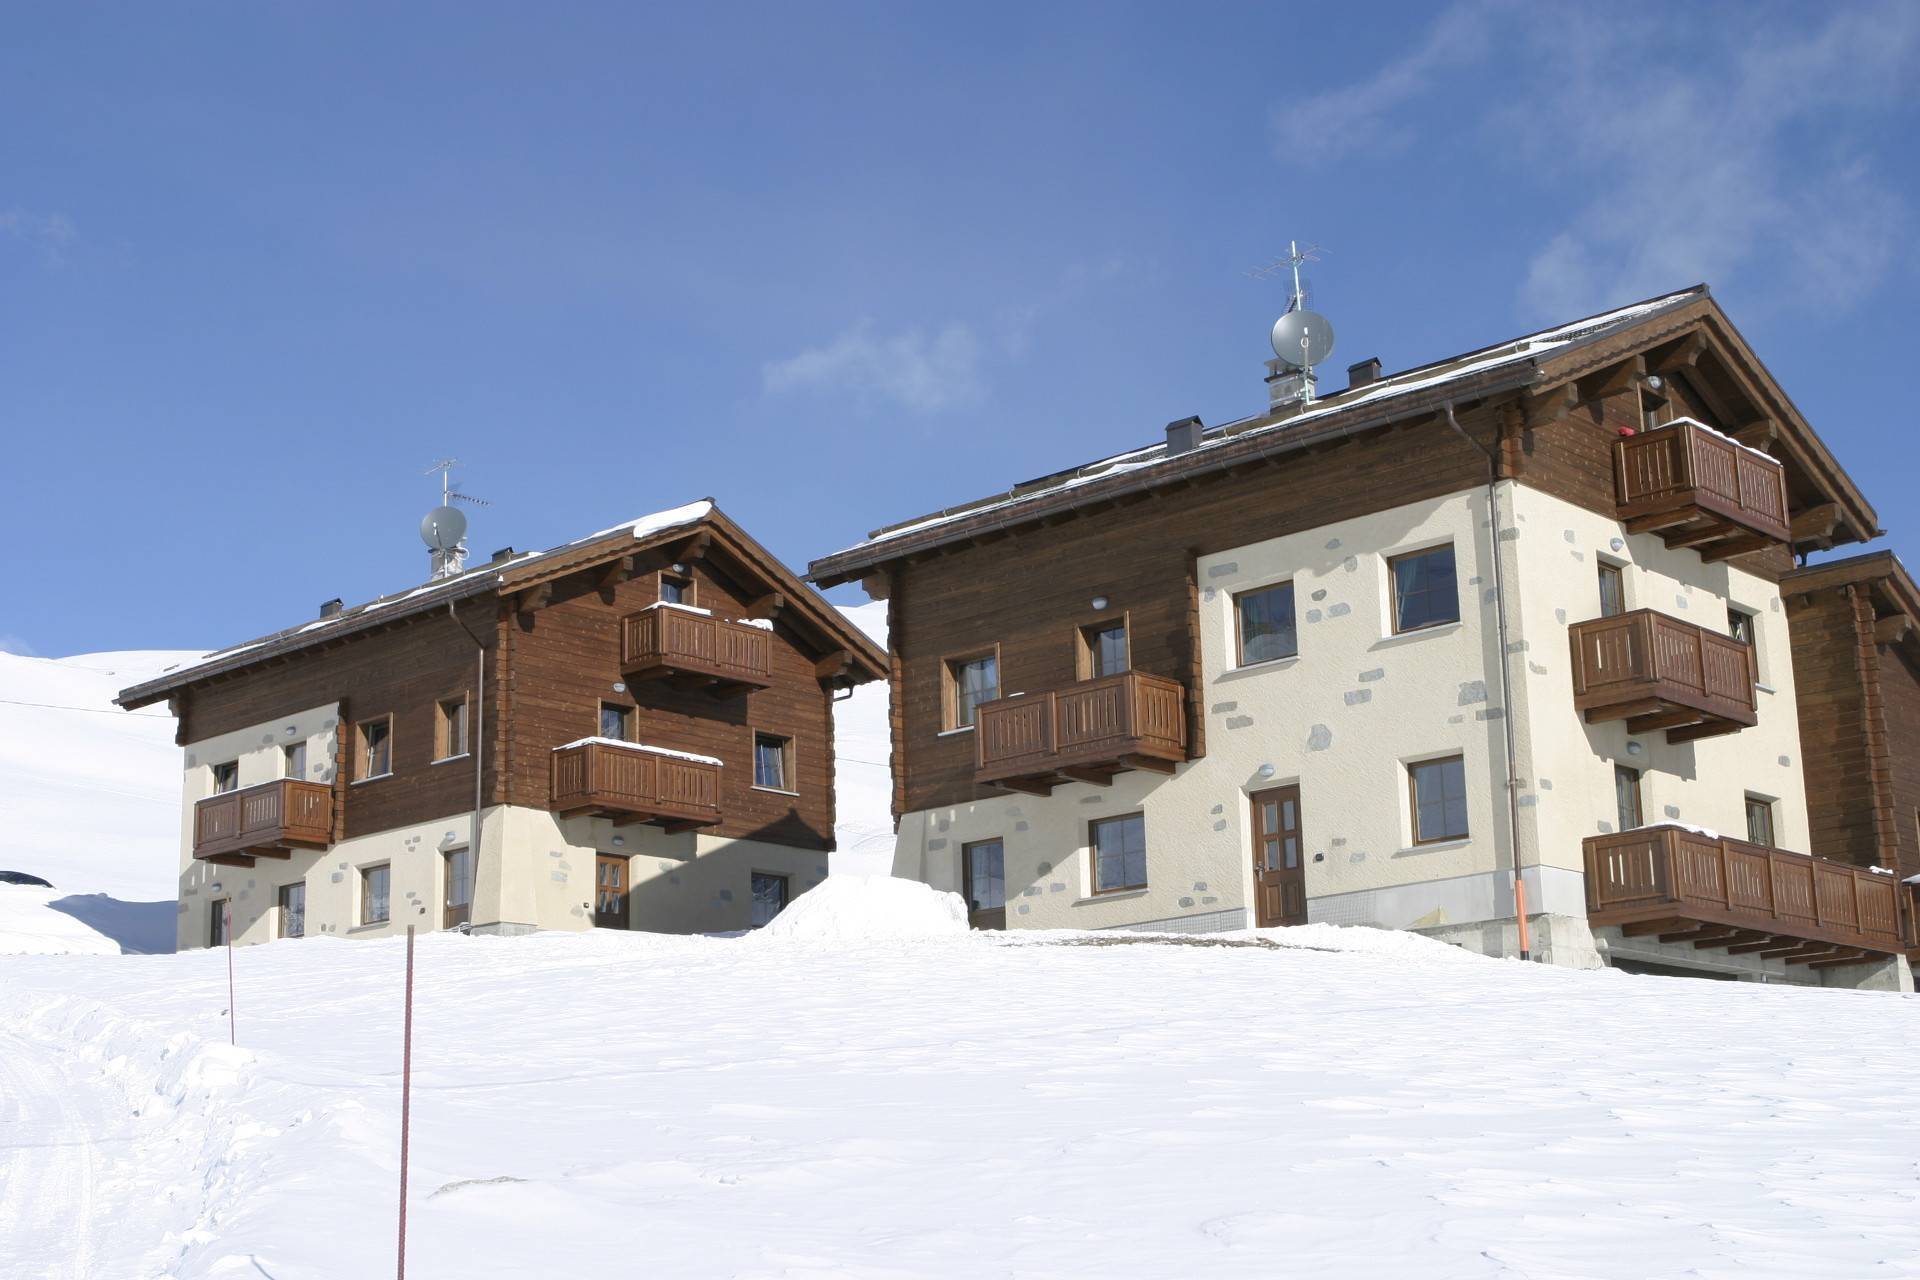 Chalet Li Baita - winter holidays in Livigno winterˈwintər Definizioni di winter sostantivo the cold